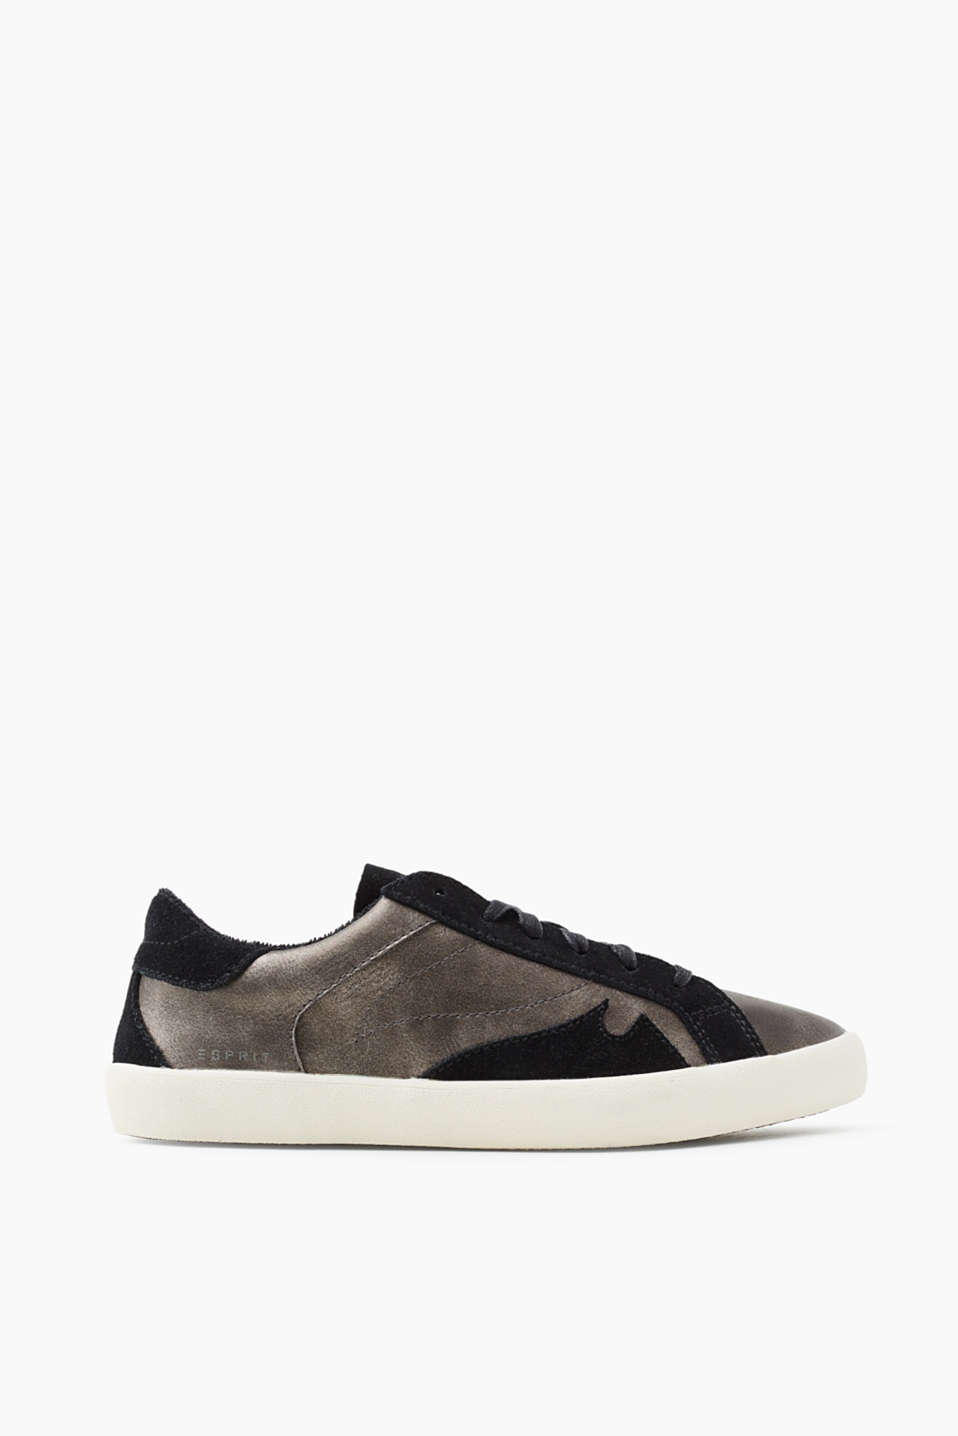 With a fashionable metallic finish: trendy trainers trimmed with suede